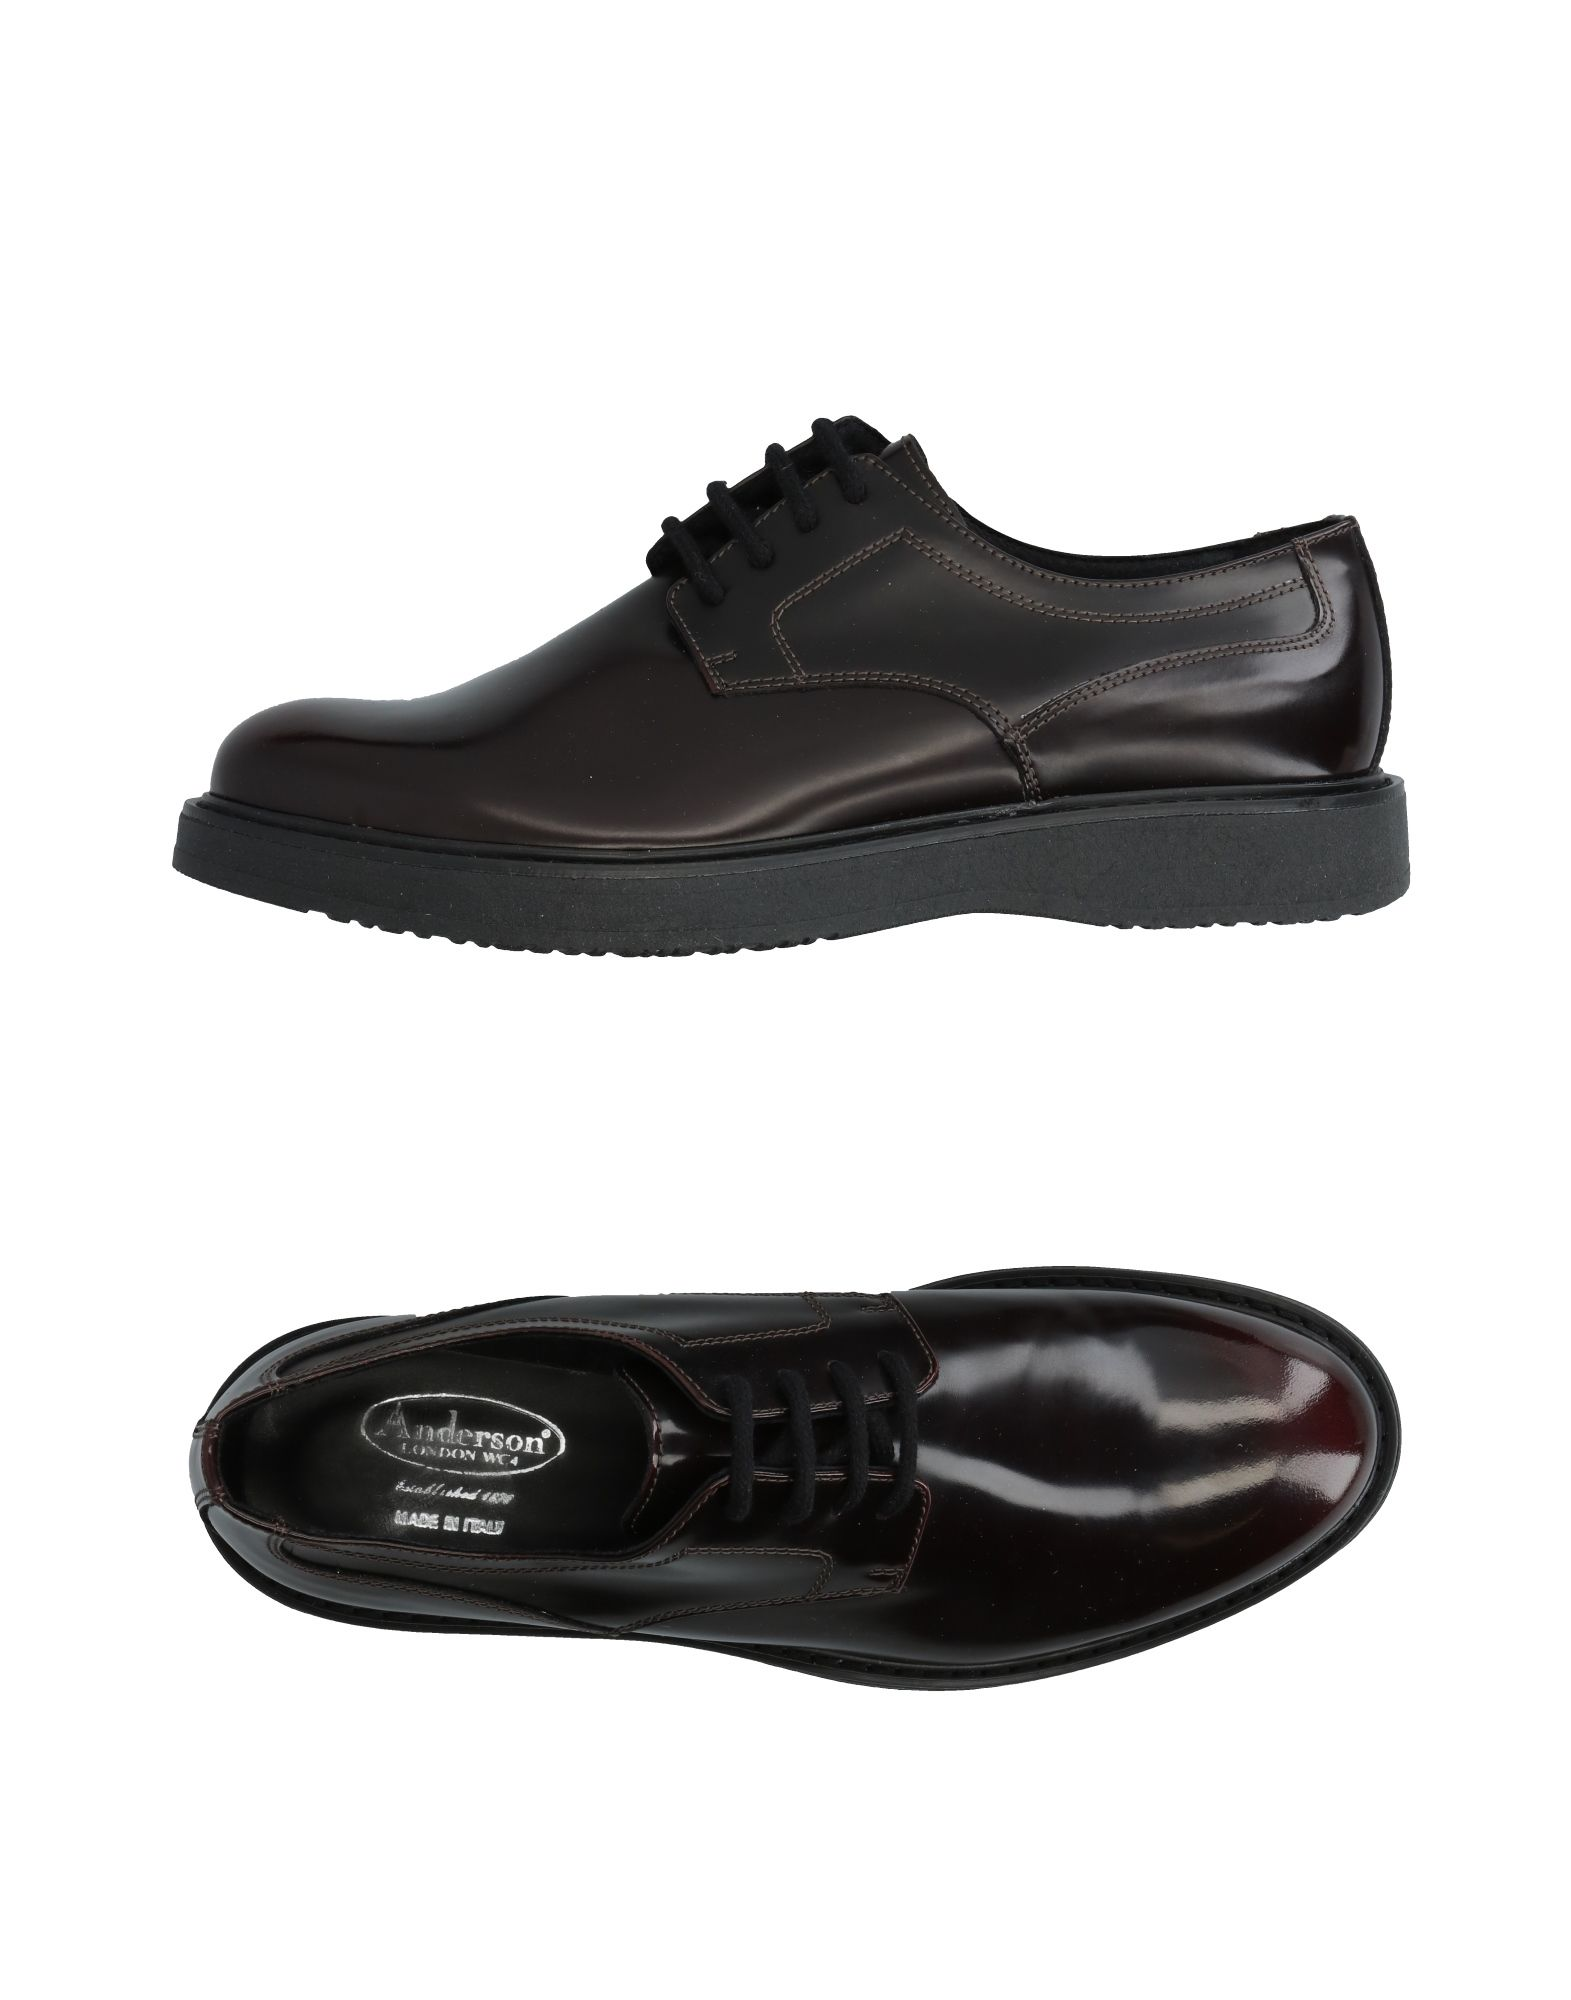 Chaussures À Lacets Anderson Femme - Chaussures À Lacets Anderson sur